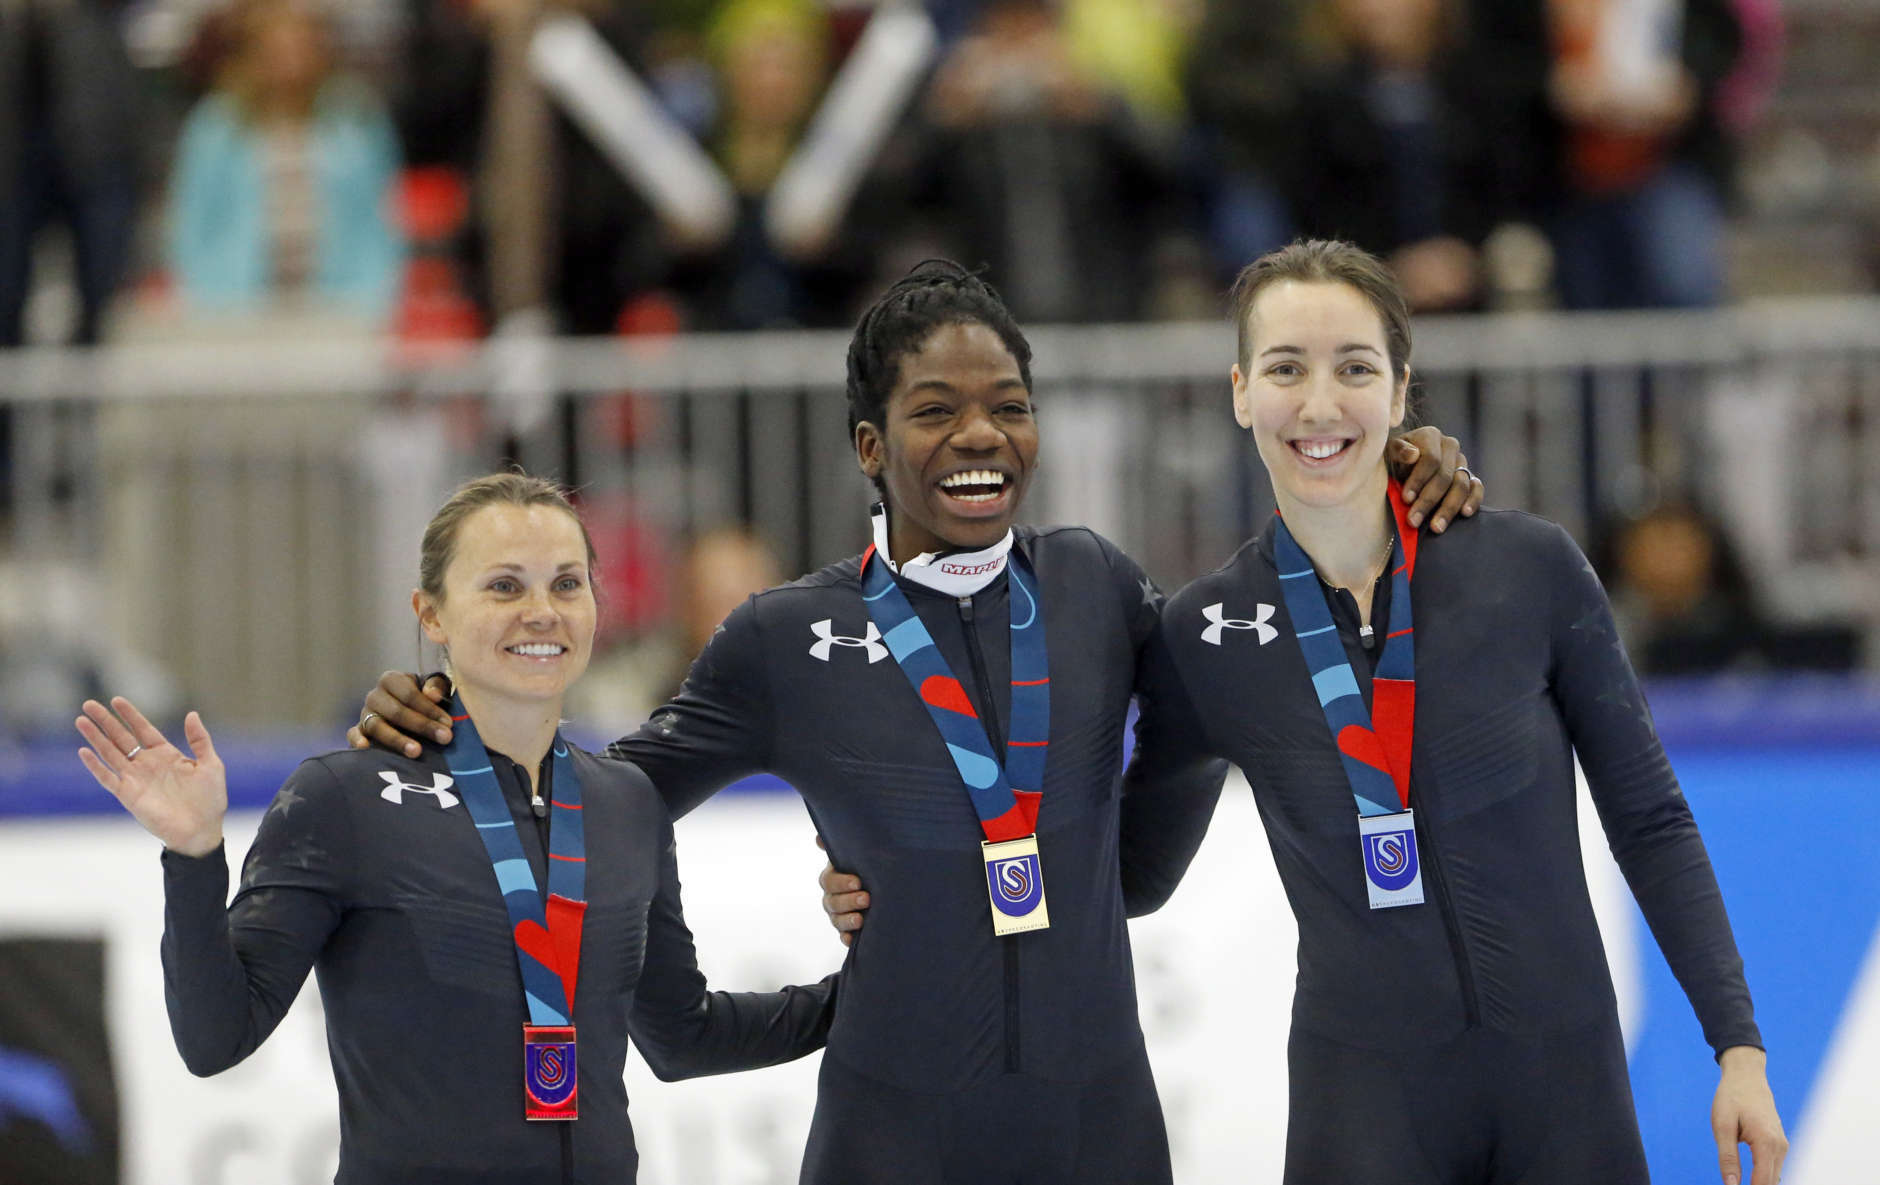 First place finisher Maame Biney, center, stands with third place finisher Jessica Kooreman, left, and second place finisher Lana Gehring, right, following the women's 500-meter during the U.S. Olympic short track speedskating trials Saturday, Dec. 16, 2017, in Kearns, Utah. (AP Photo/Rick Bowmer)